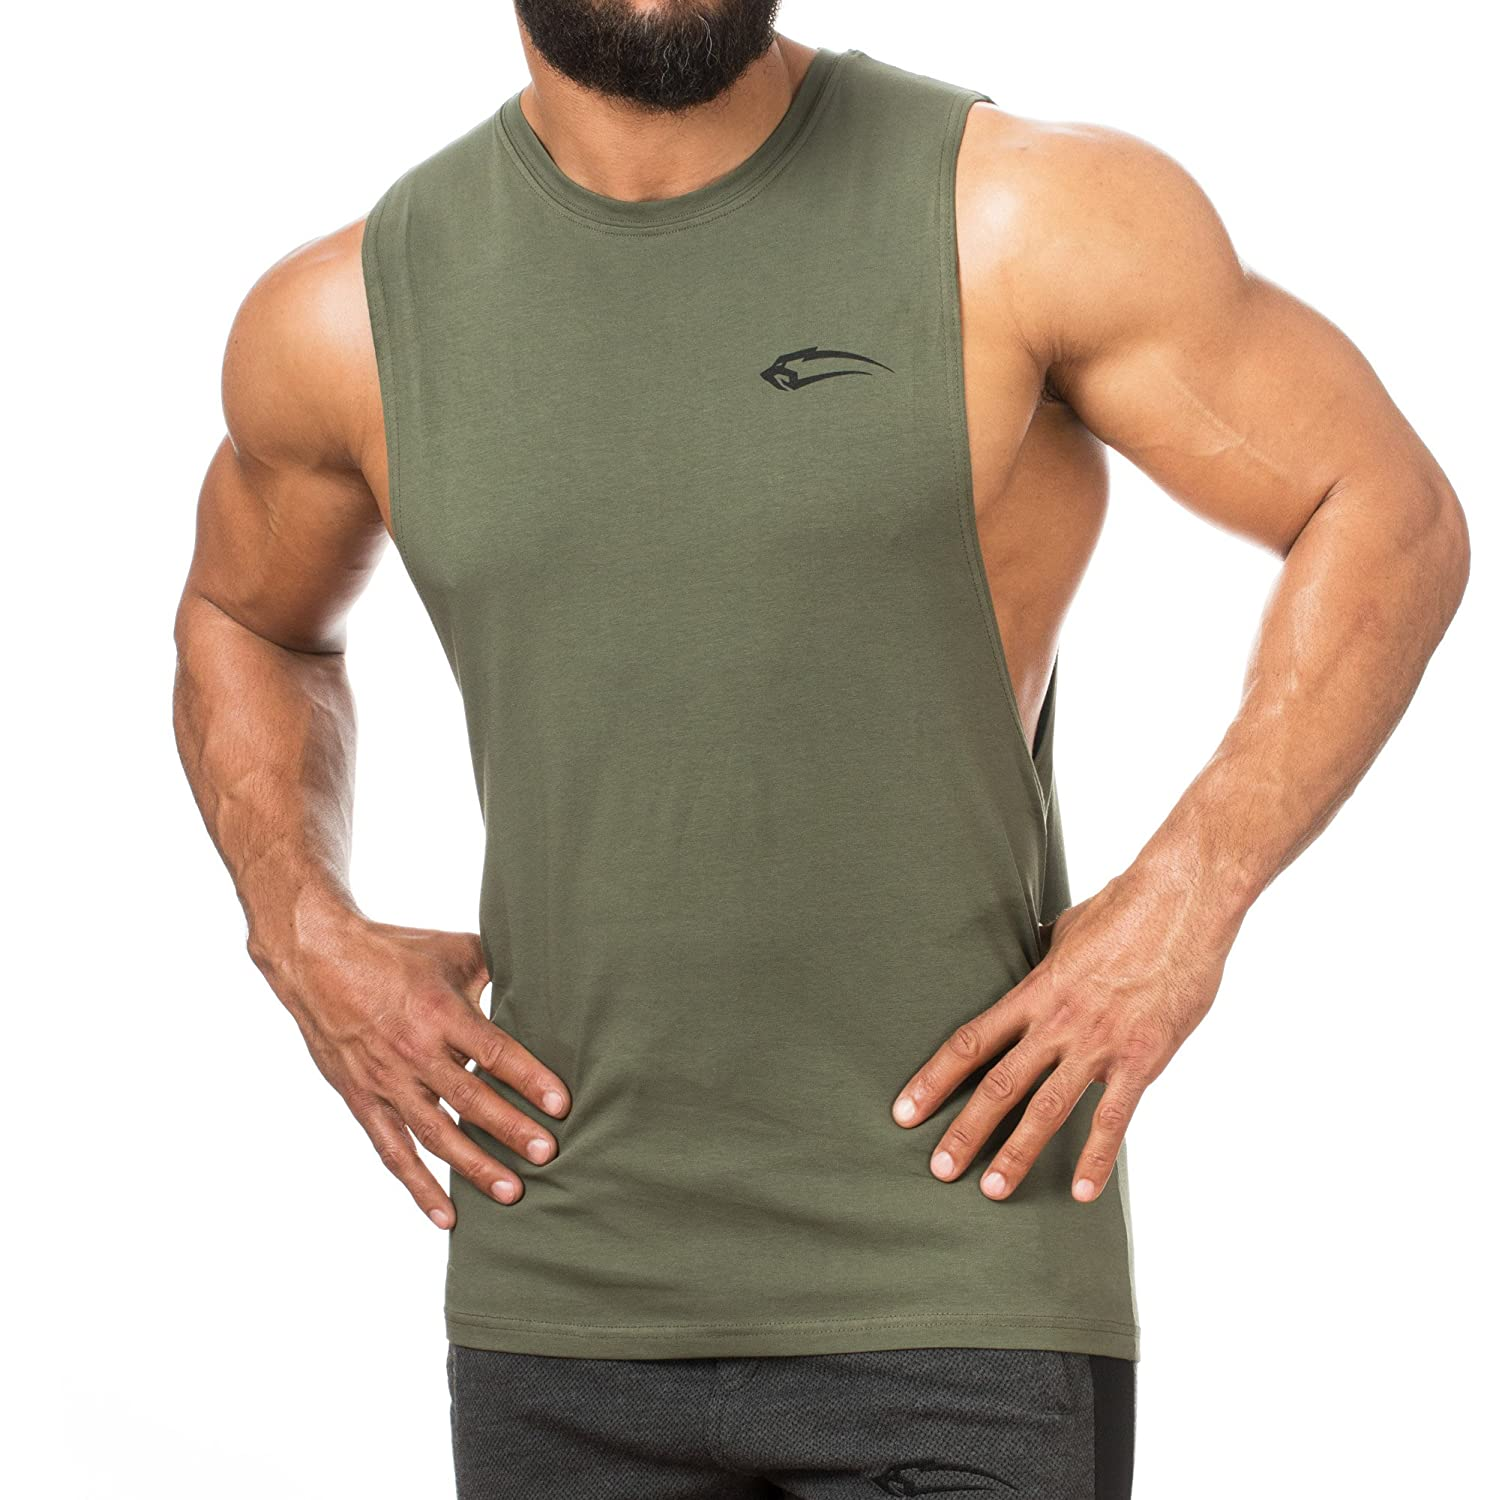 6c774a7739726 SMILODOX Cut Off Tank Top Men